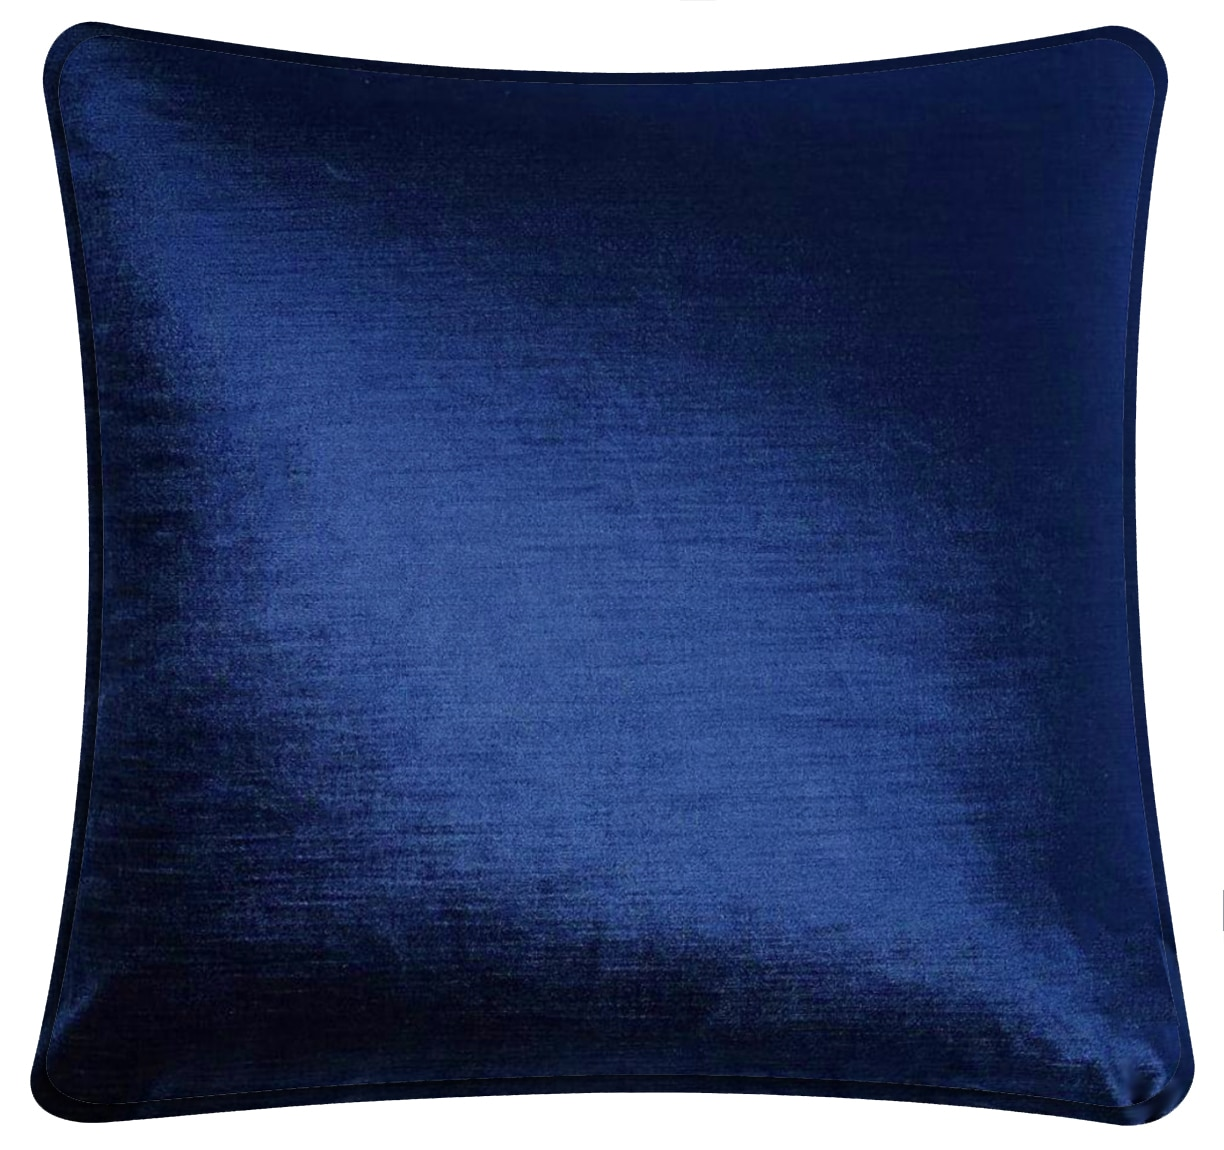 Blue Velvet Cushion Plain Blue Velvet Throw Pillow